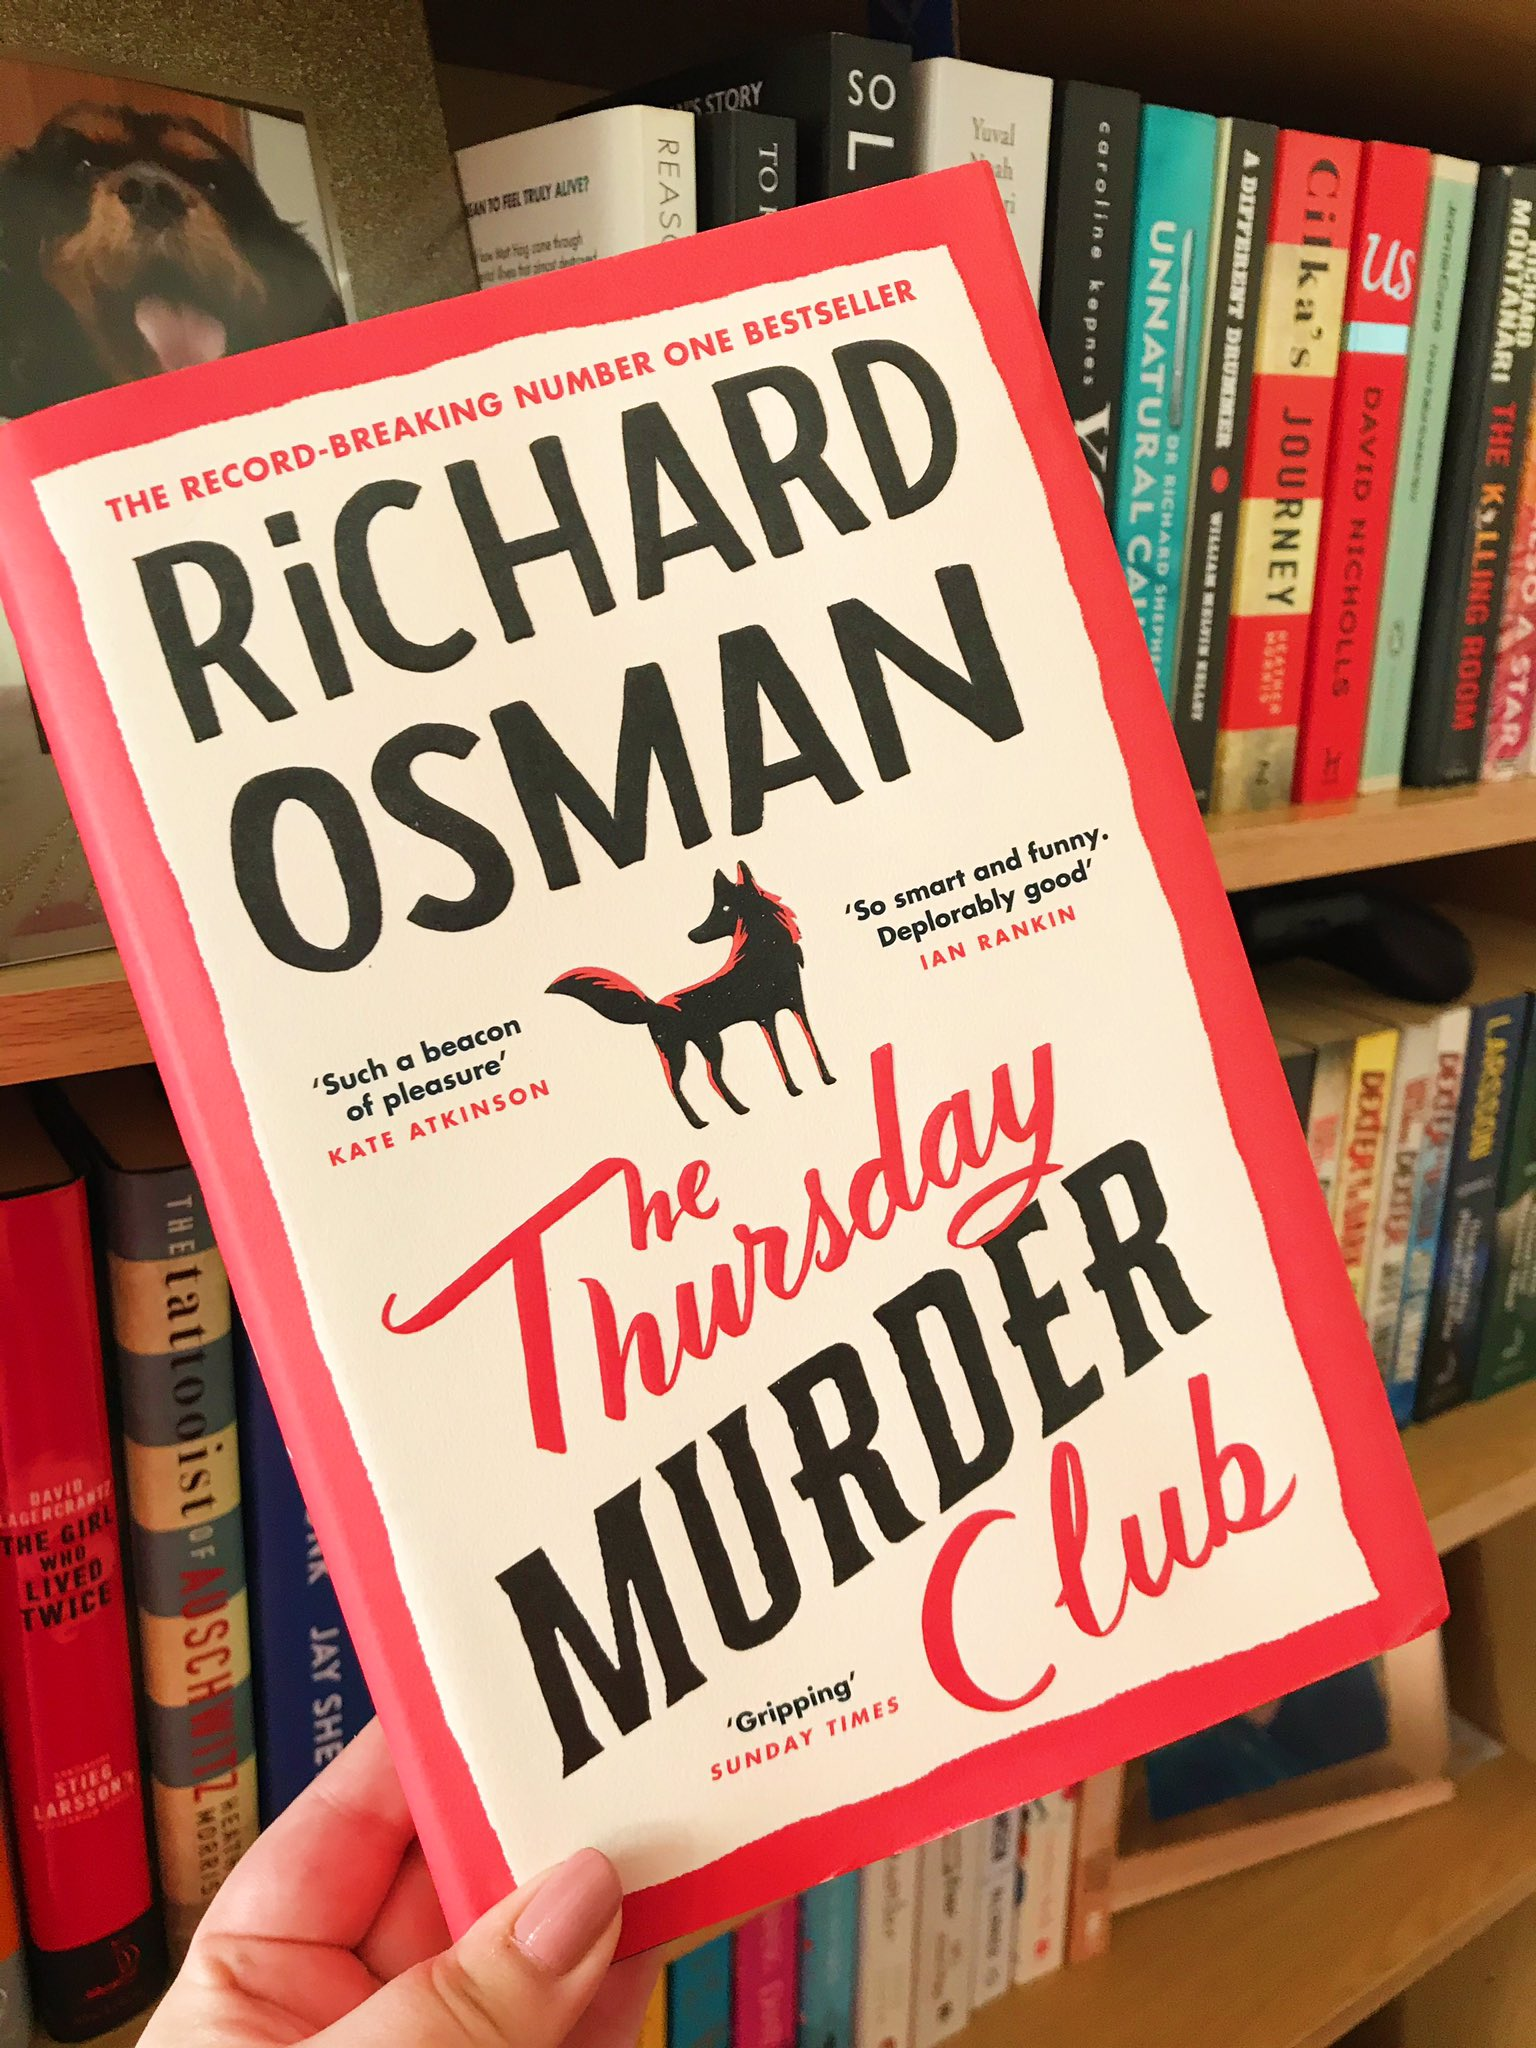 The Thursday Murder Club by Richard Osman held up in front of bookshelf